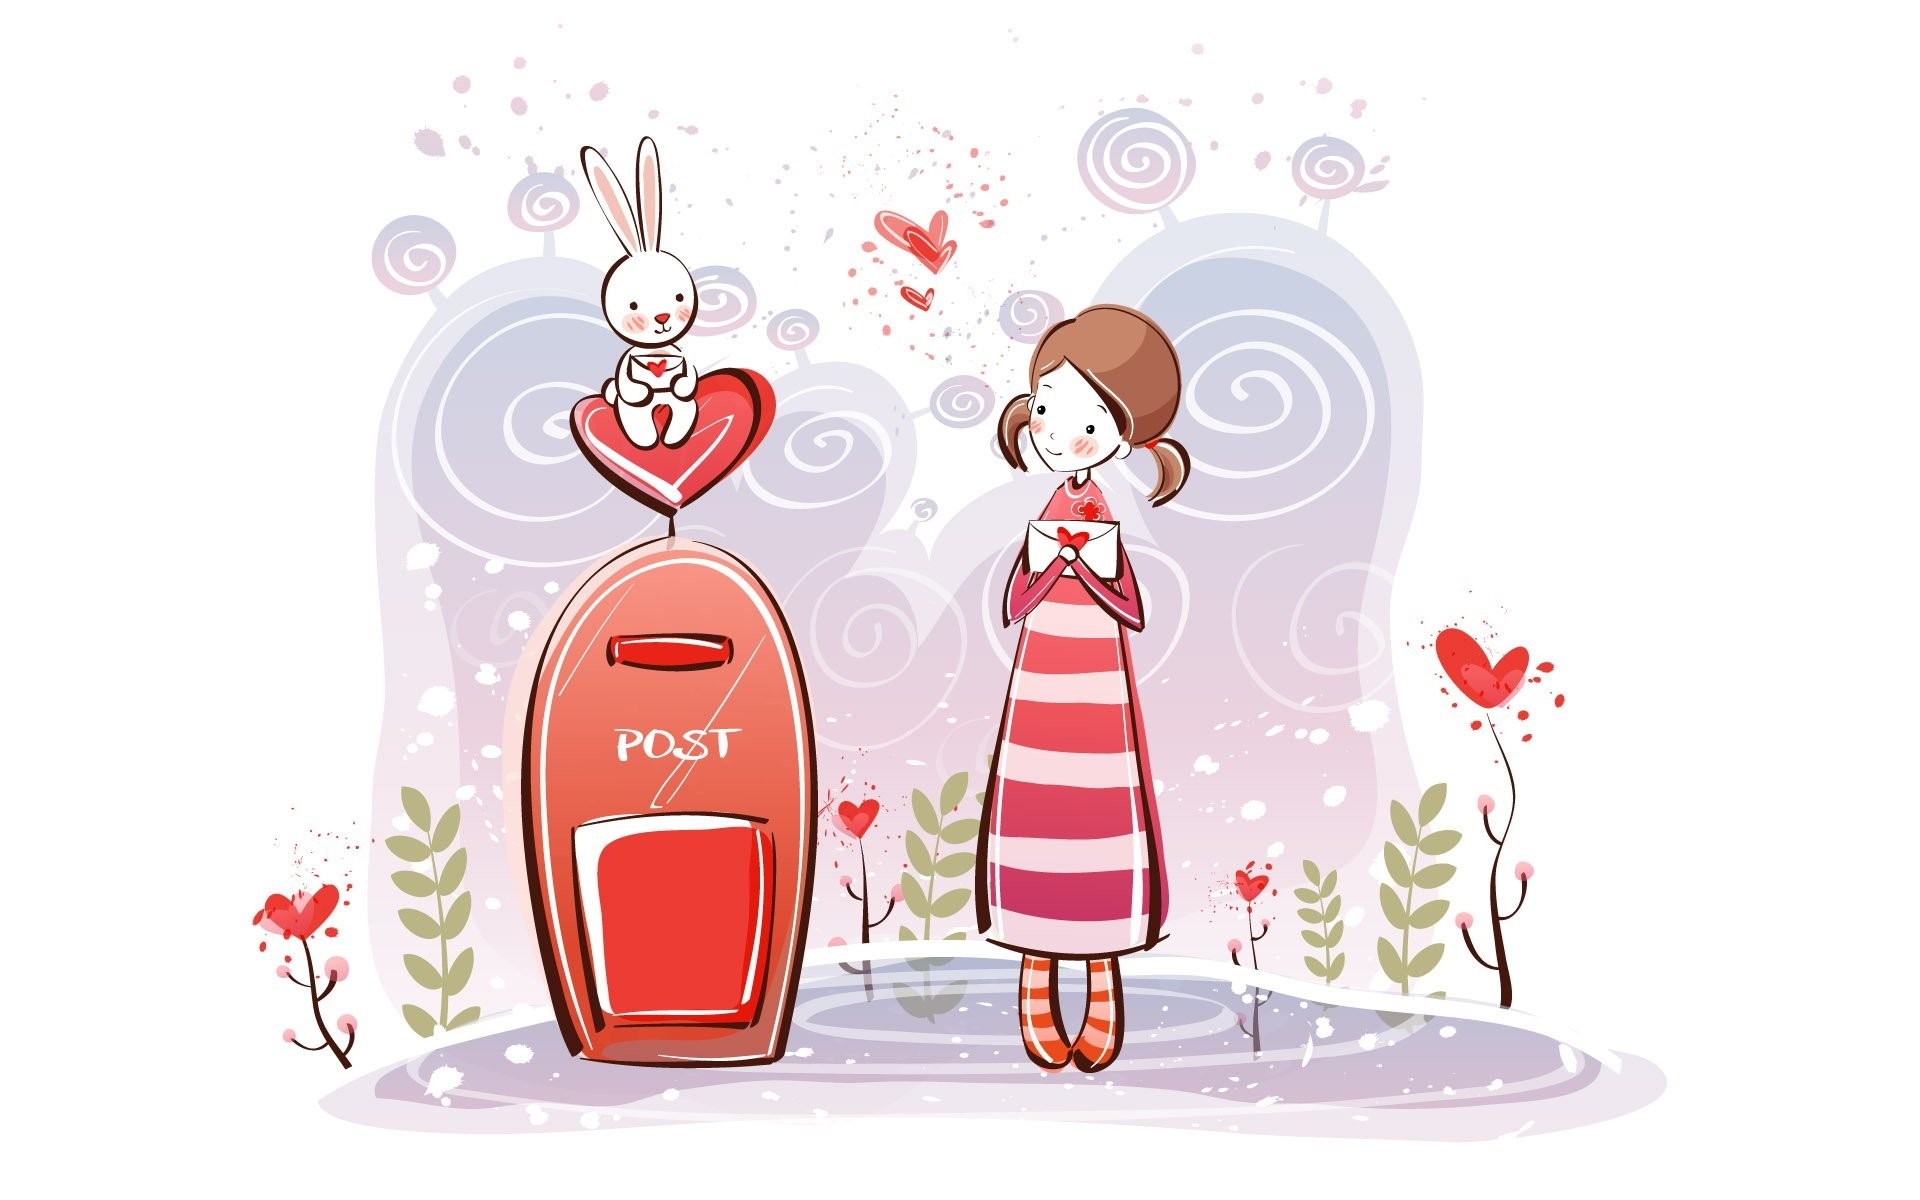 https://www.walldevil.com/wallpapers/a66/photo-cartoon-wallpaper-desken- valentine-ktqrj.jpg | love | Pinterest | Cartoon wallpaper, Cartoon and  Wallpaper